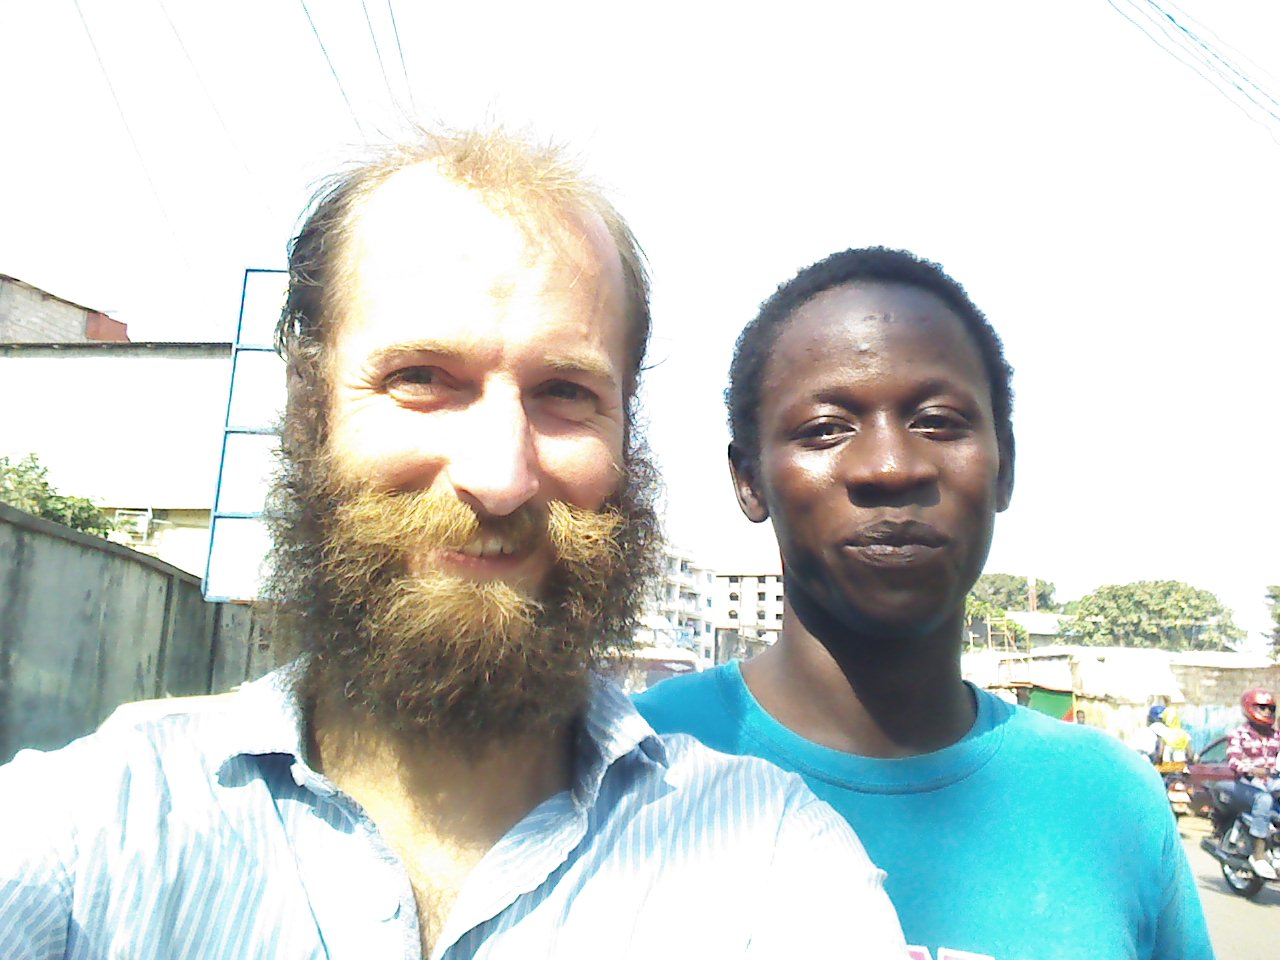 Myself (left) and Liberian friend (right), Conakry, Guinea.